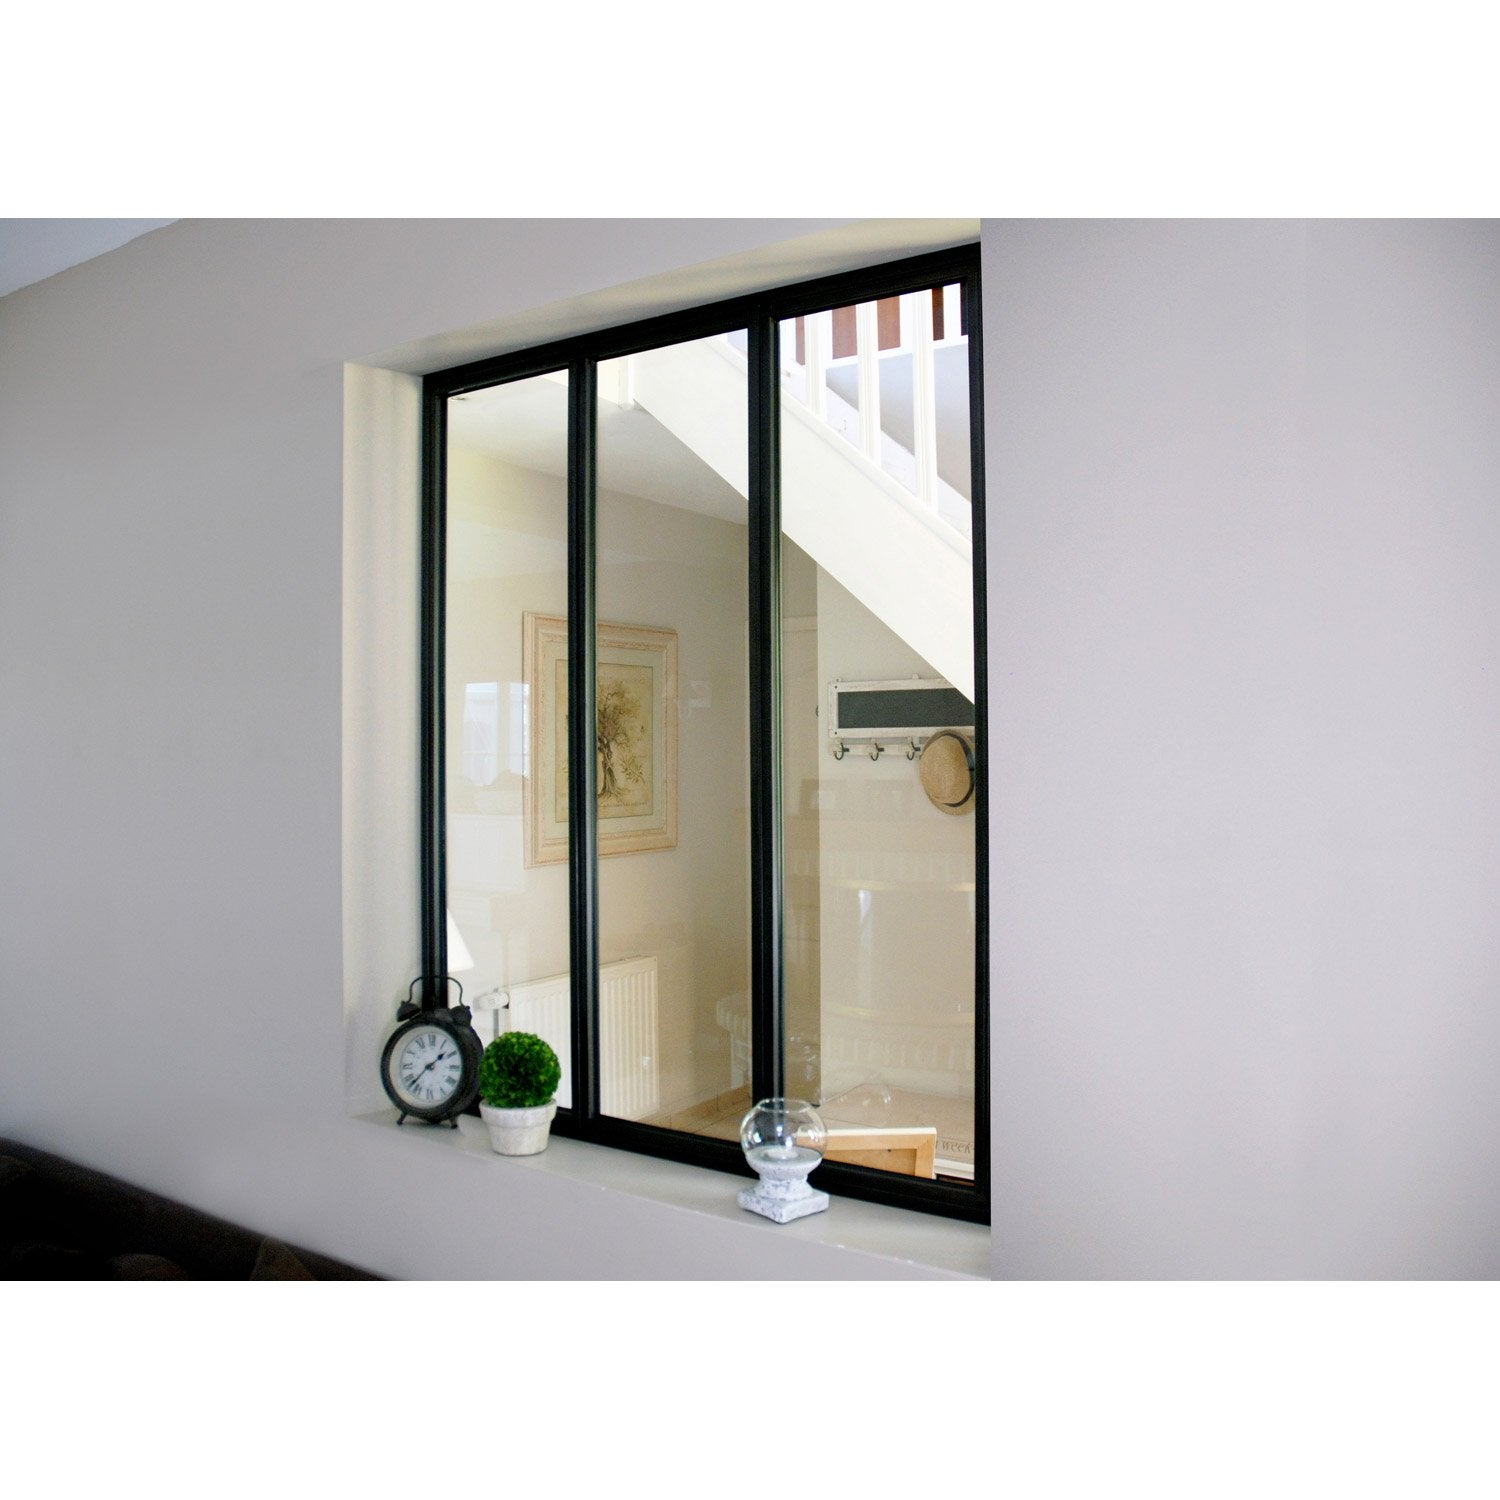 Verri re d 39 int rieur atelier en kit aluminium noir 3 for Claustra interieur leroy merlin